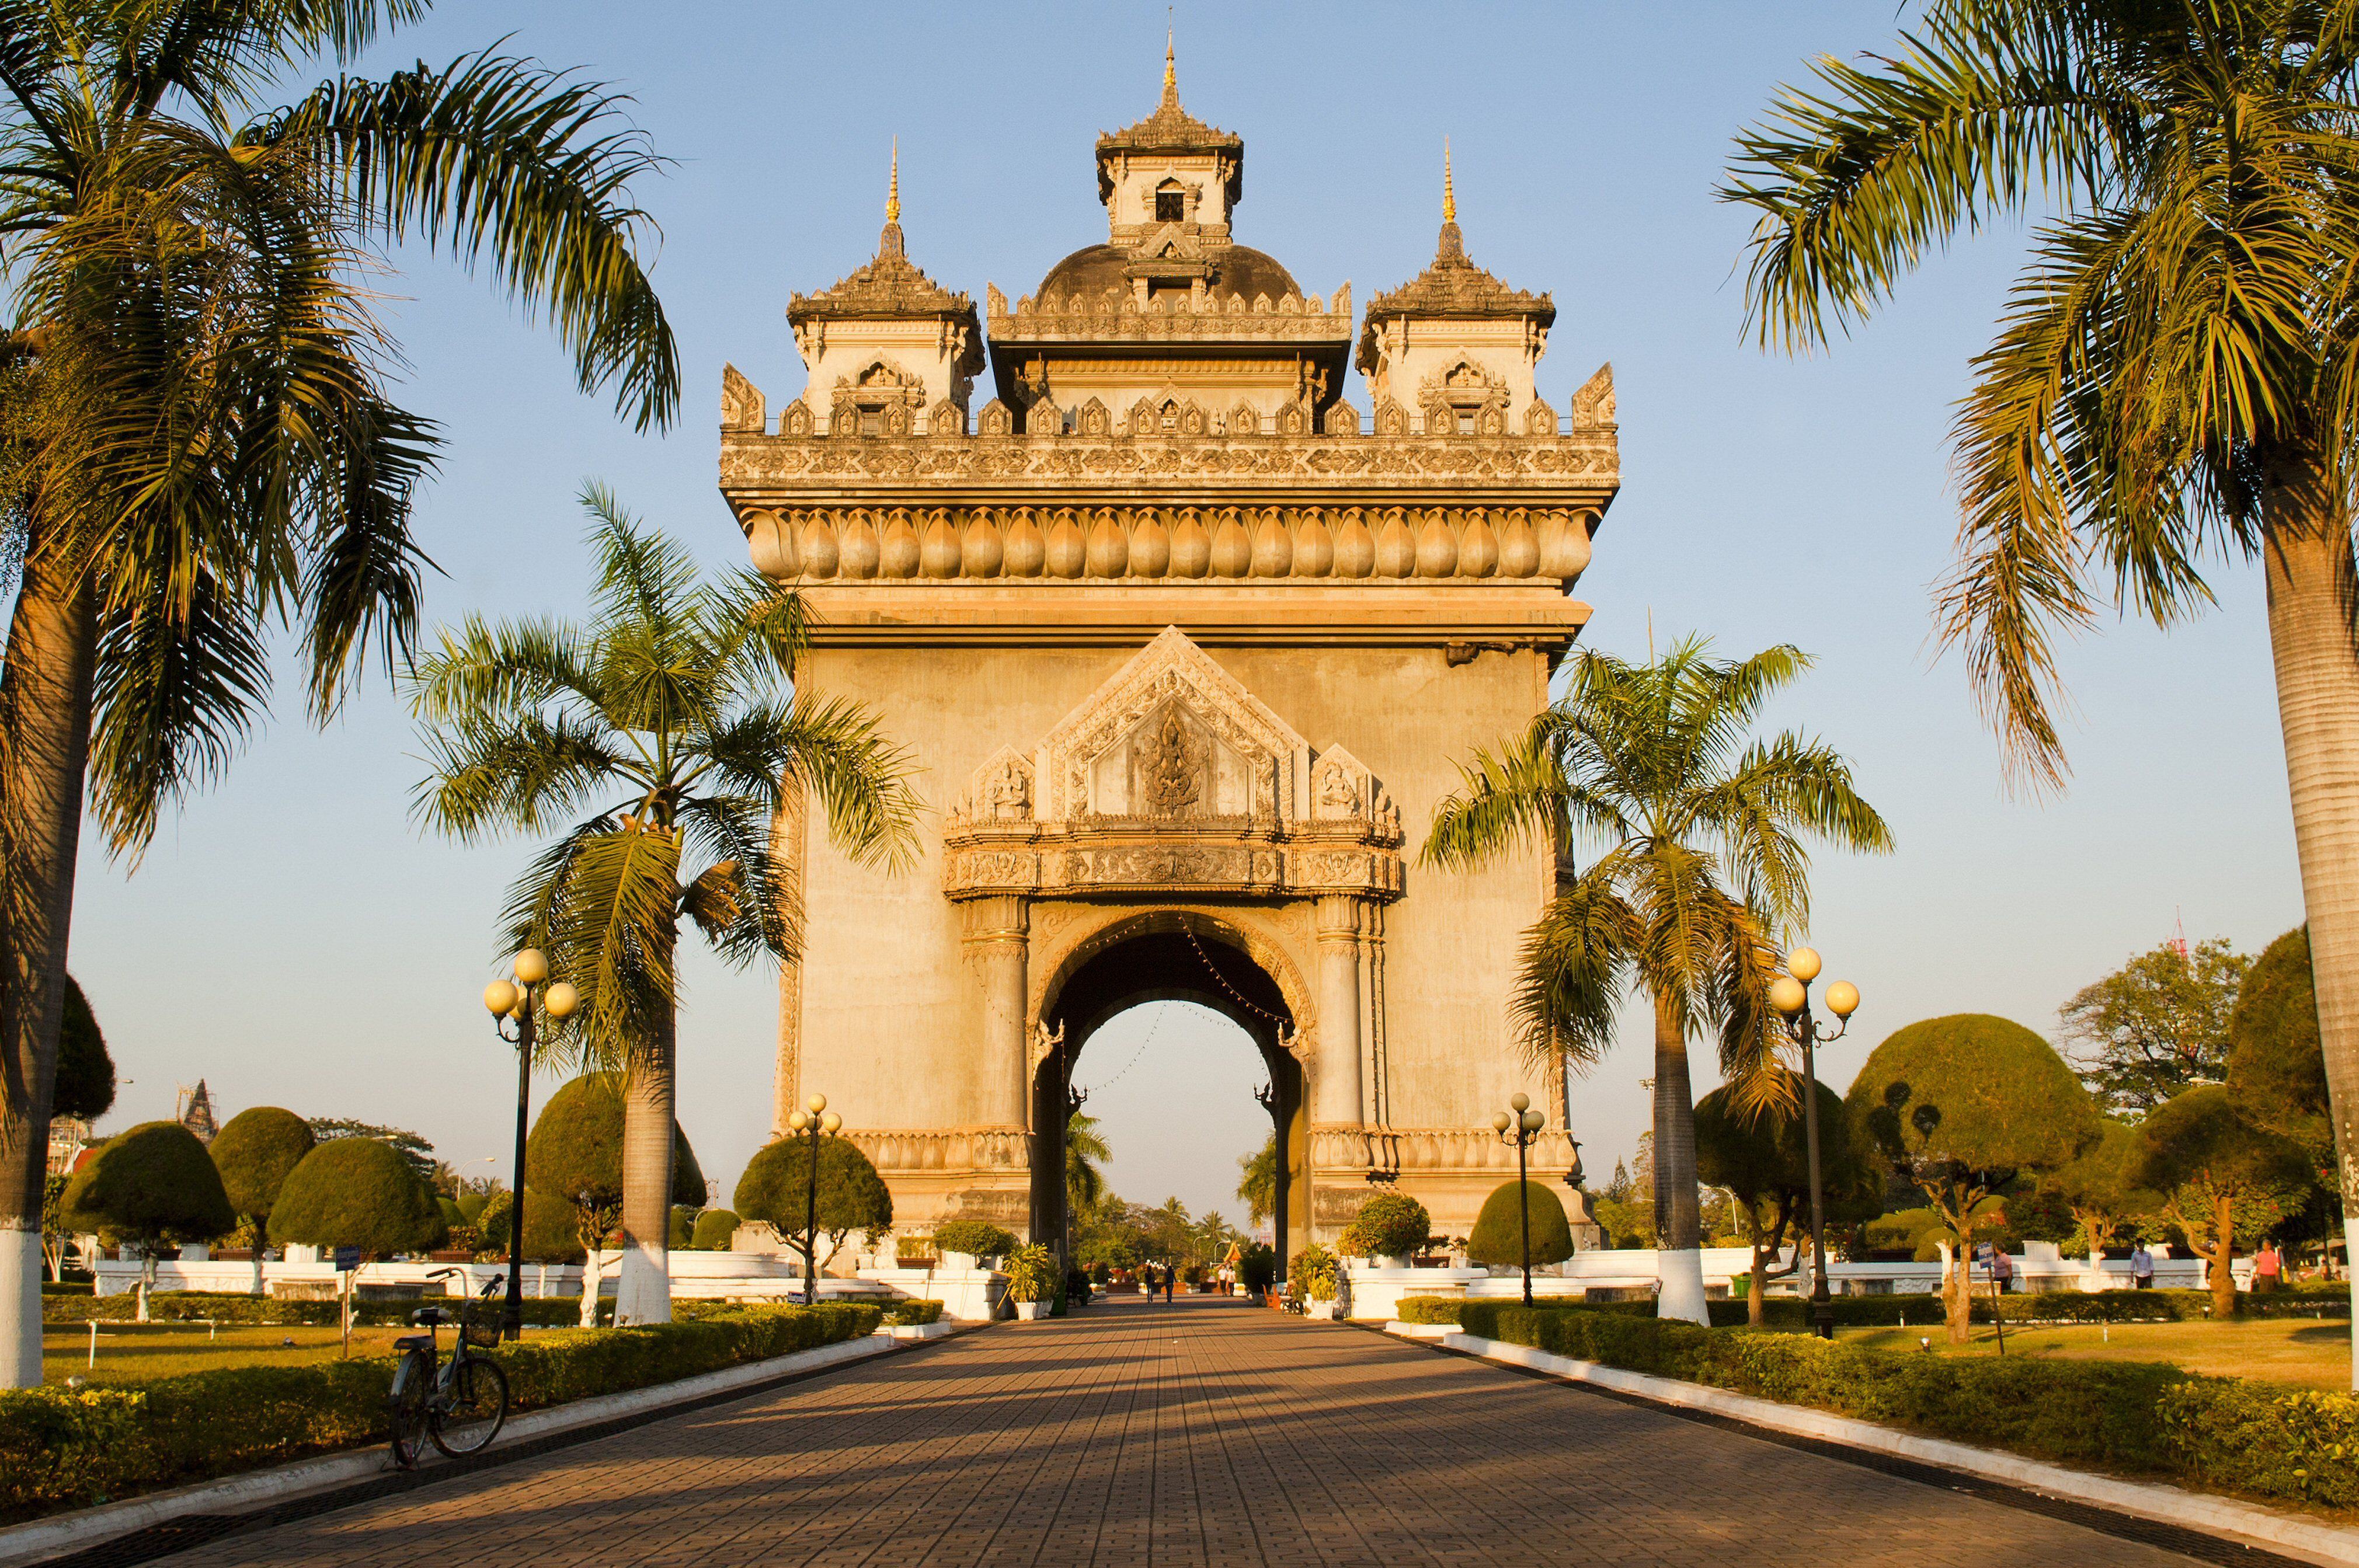 large archways similar to Arc de Triomphe in Paris but with Asian detailing